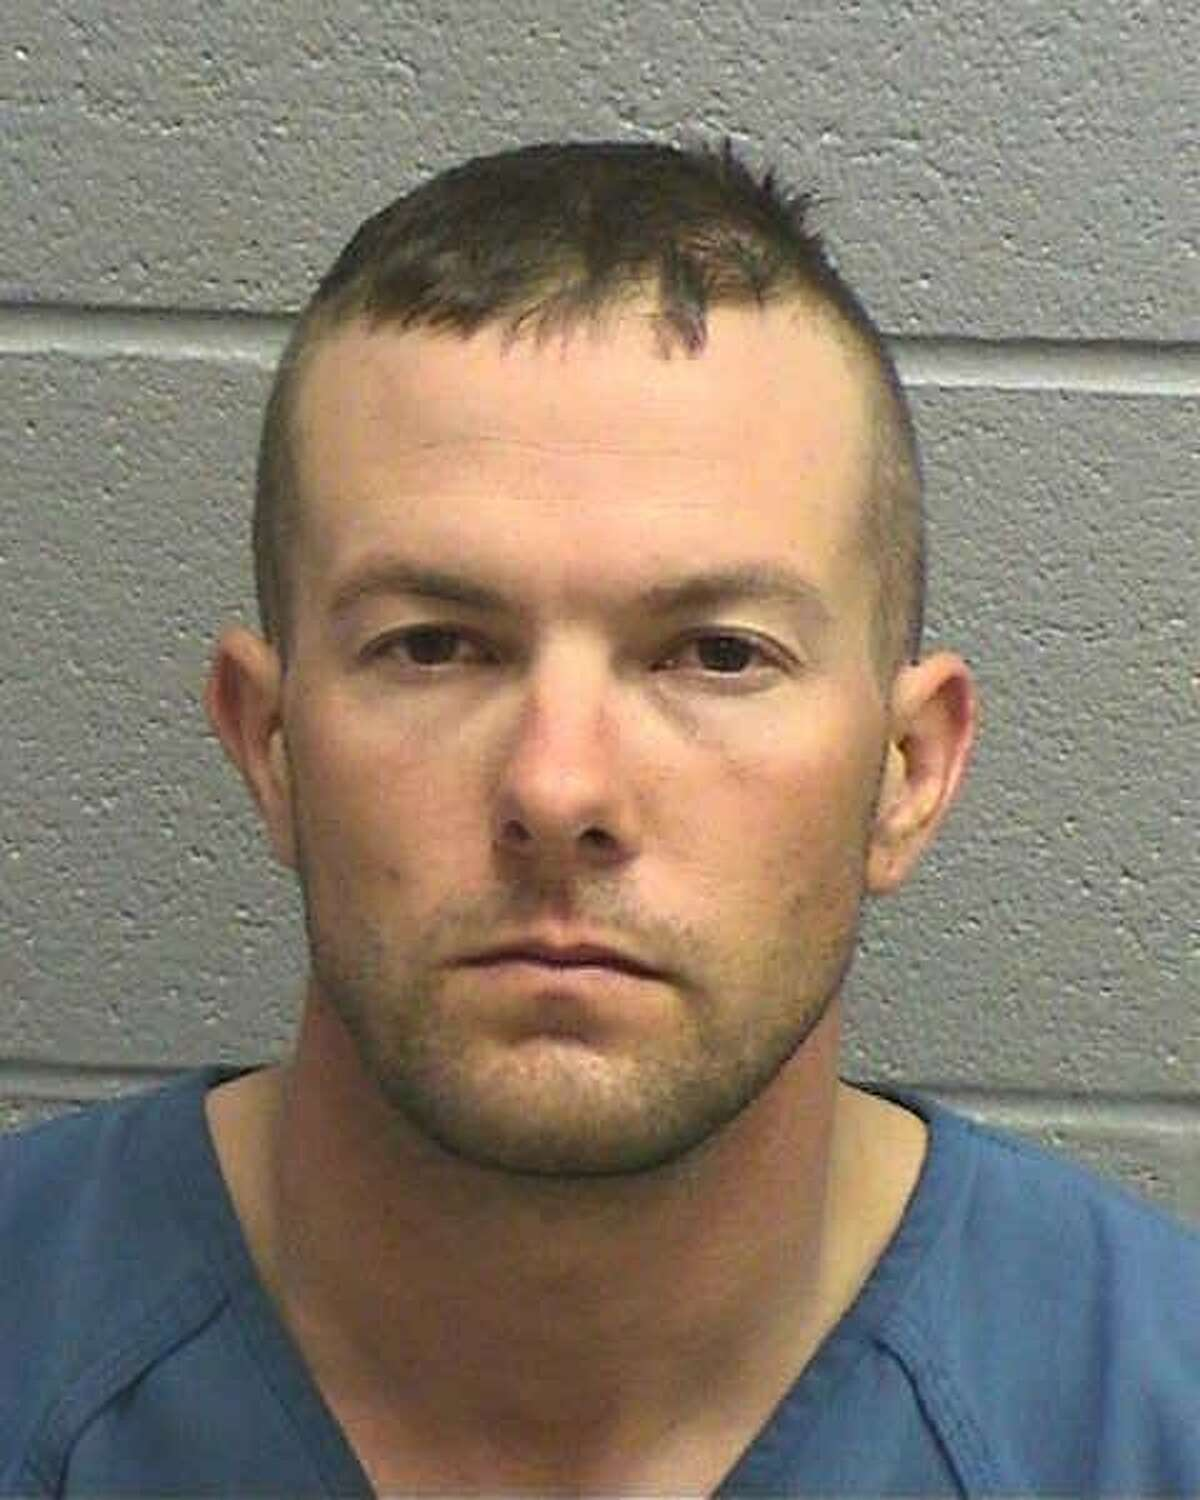 Richard C. Putnam, 26, of Midland, was charged Feb. 2 with driving while intoxicated three or more times.